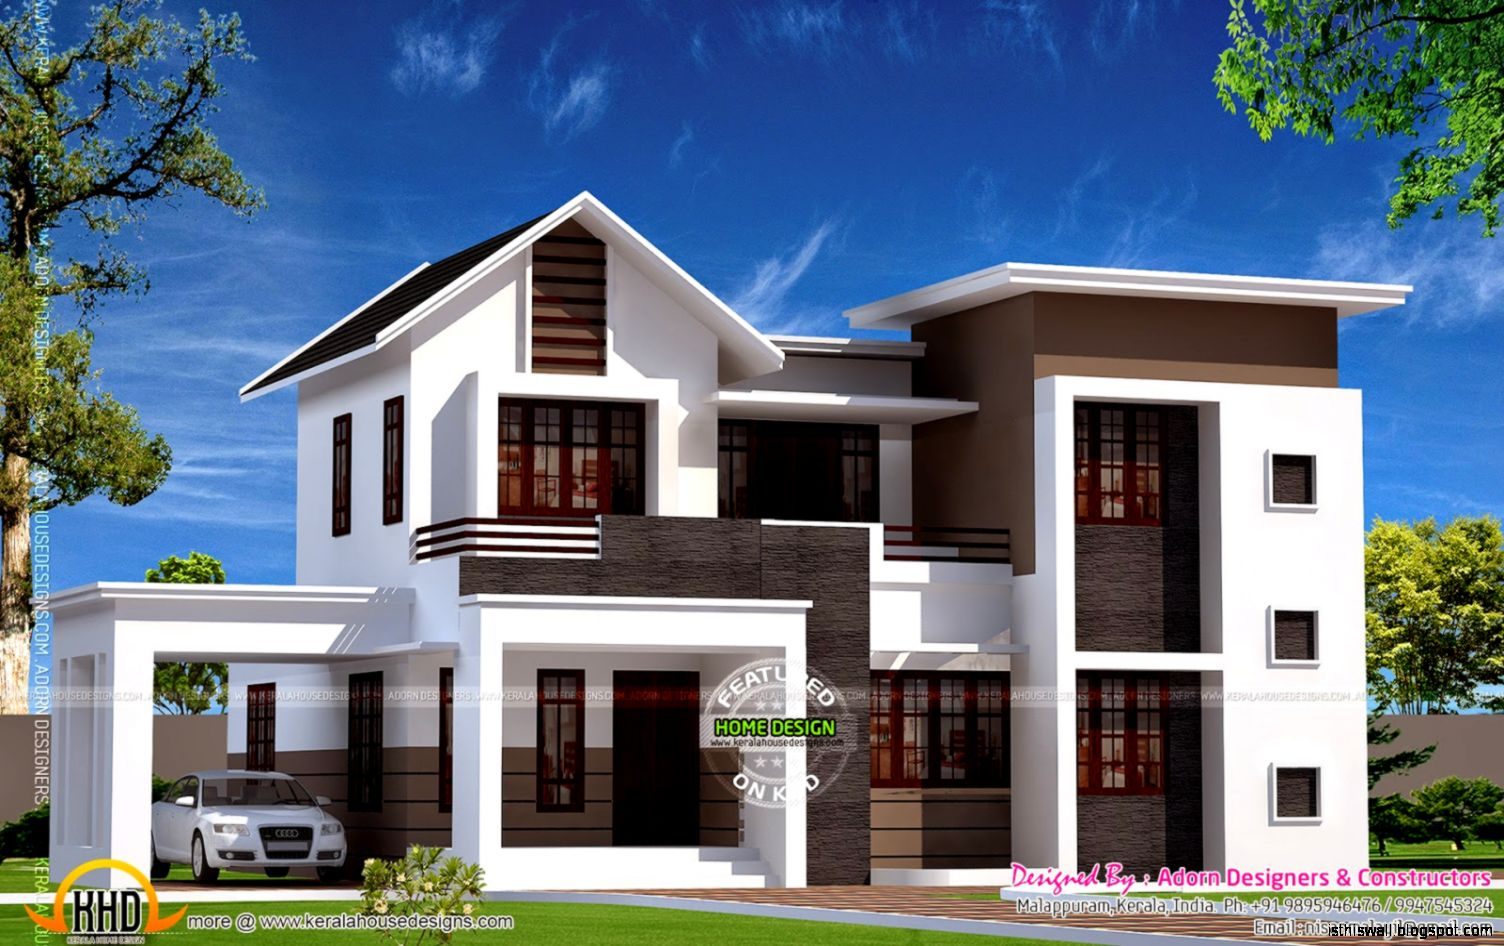 Home houses design this wallpapers House designs indian style pictures